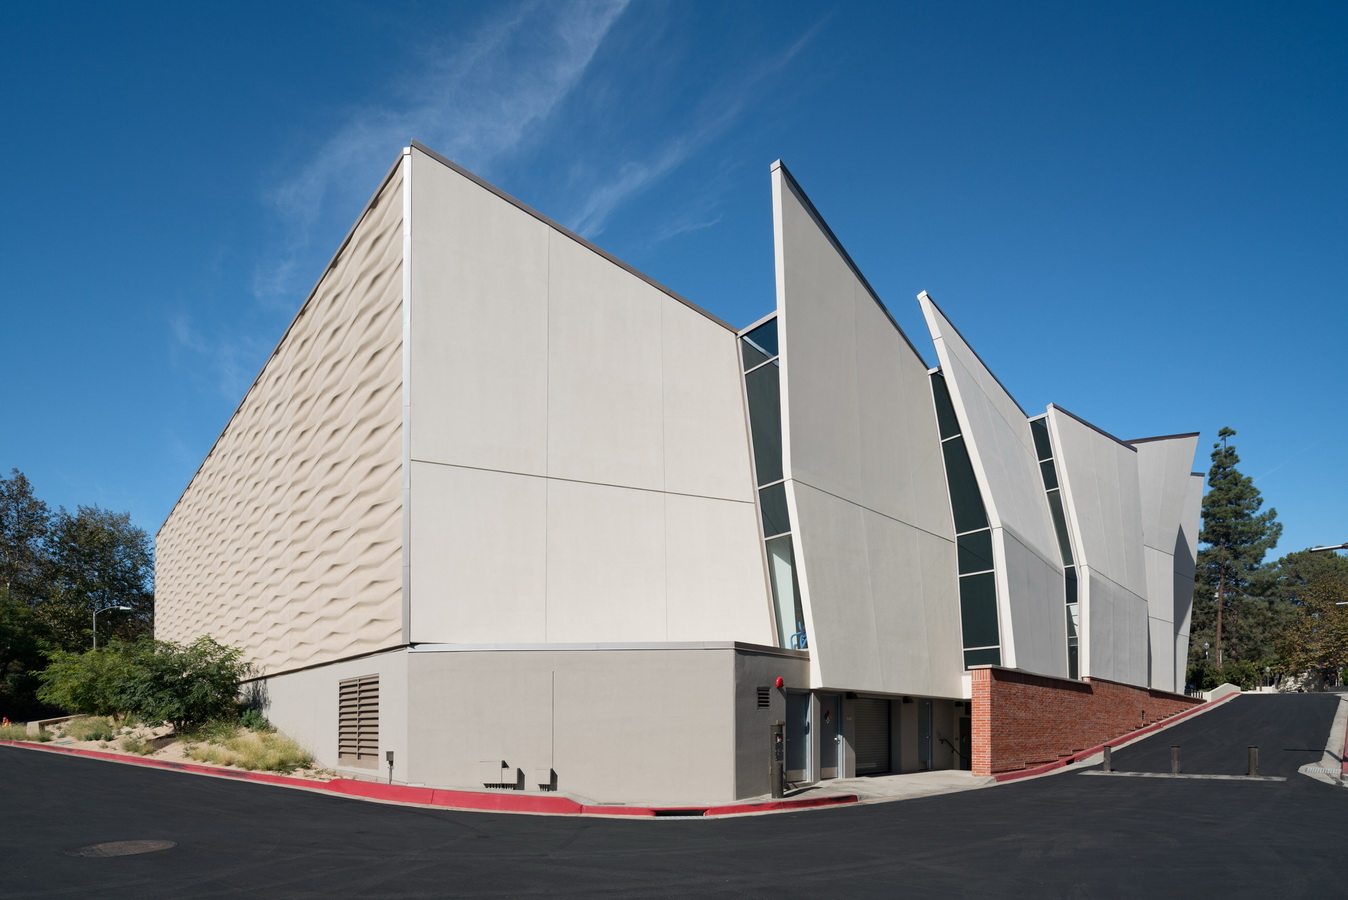 调整大小 ucla-basketball-facility-kevin-daly-architects-architecture-los-angeles-california-usa_dezeen_2364_col_6.jpg